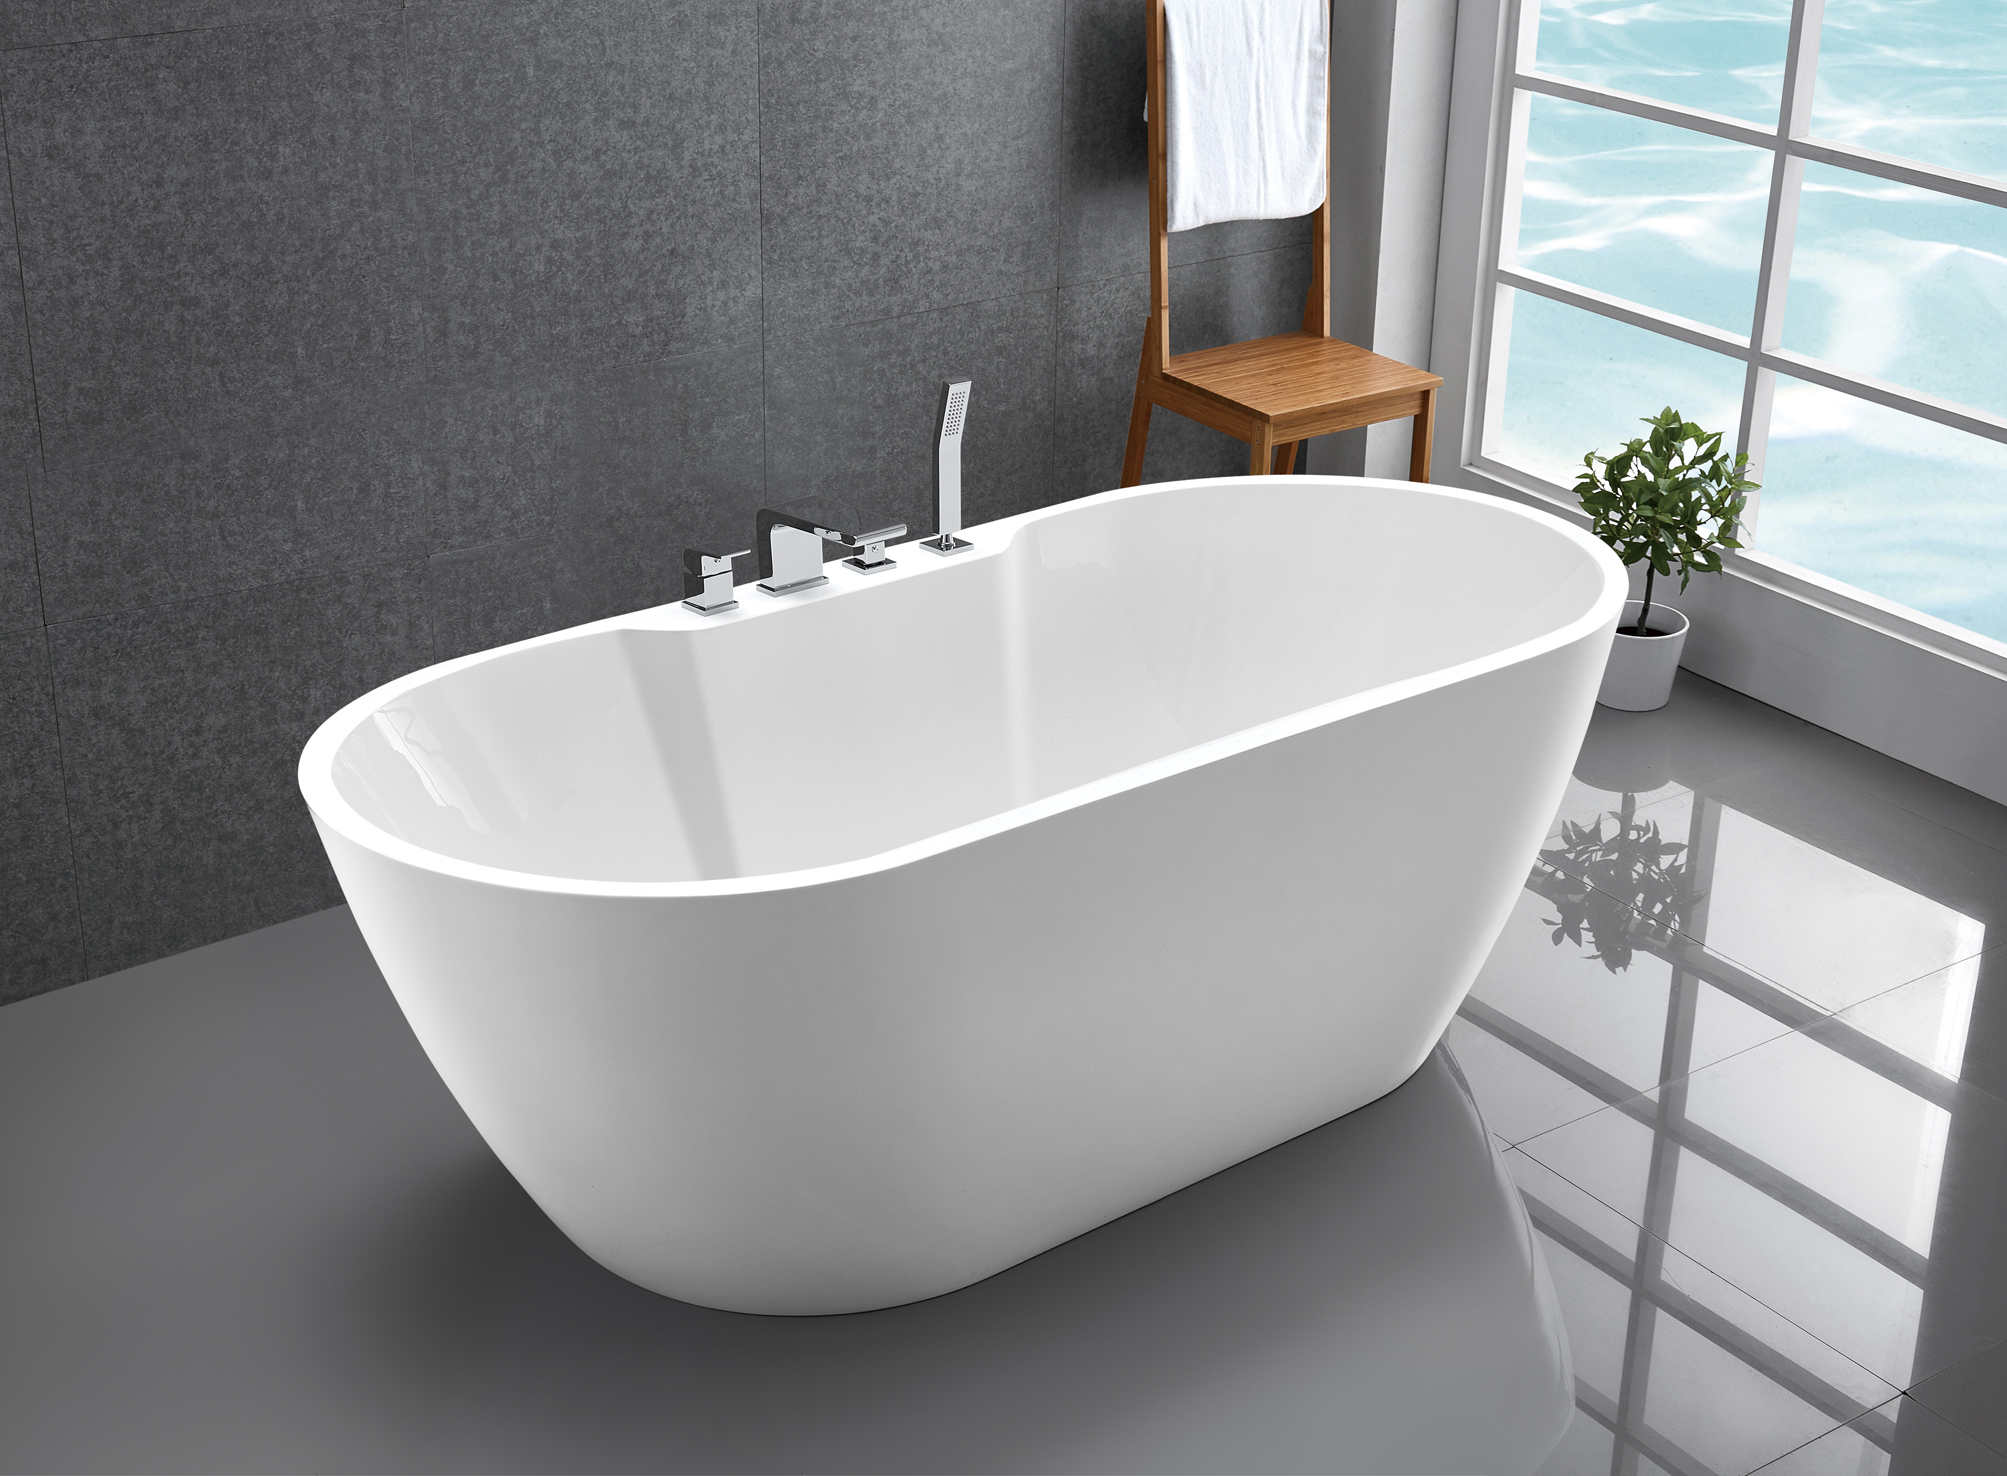 freistehende badewanne standbadewanne acryl jazz plus wei 170 x 80 cm armatur ebay. Black Bedroom Furniture Sets. Home Design Ideas